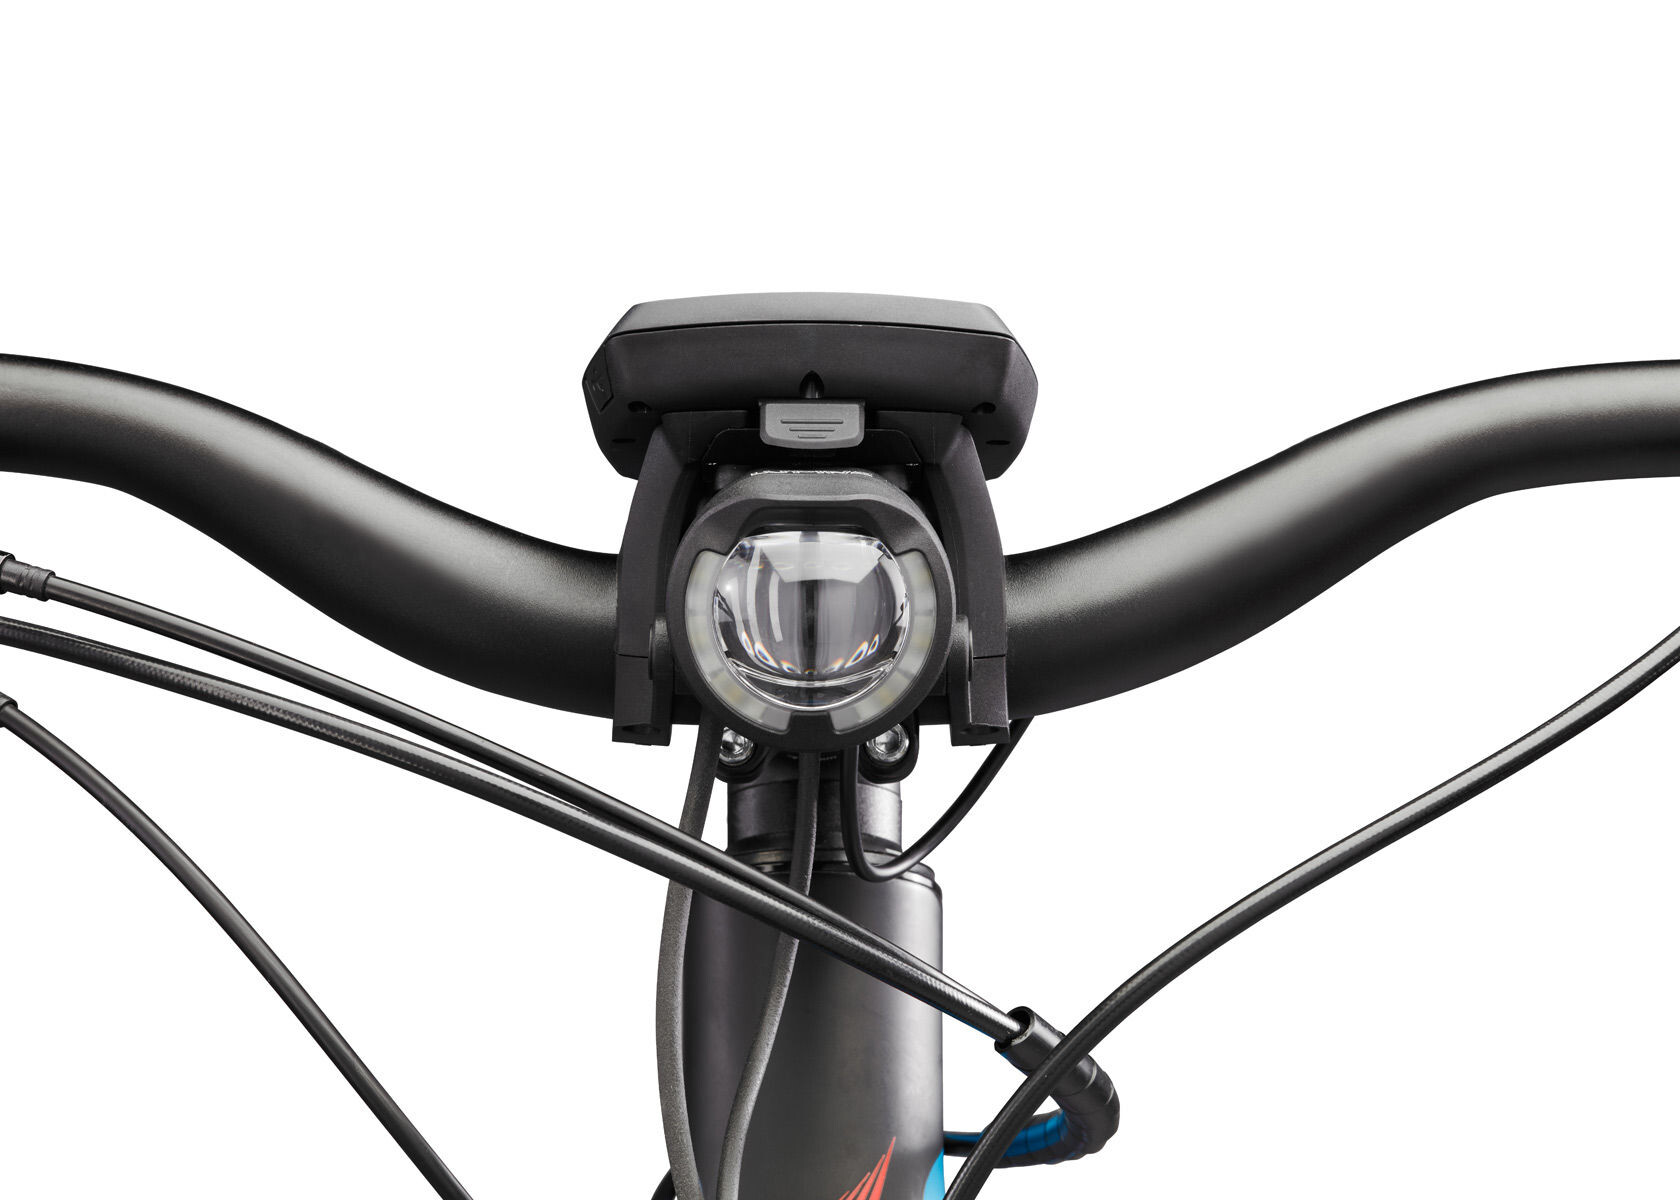 Lupine Sl B Bosch E Bike Headlight With Holder On Bosch Display At Bikester Co Uk